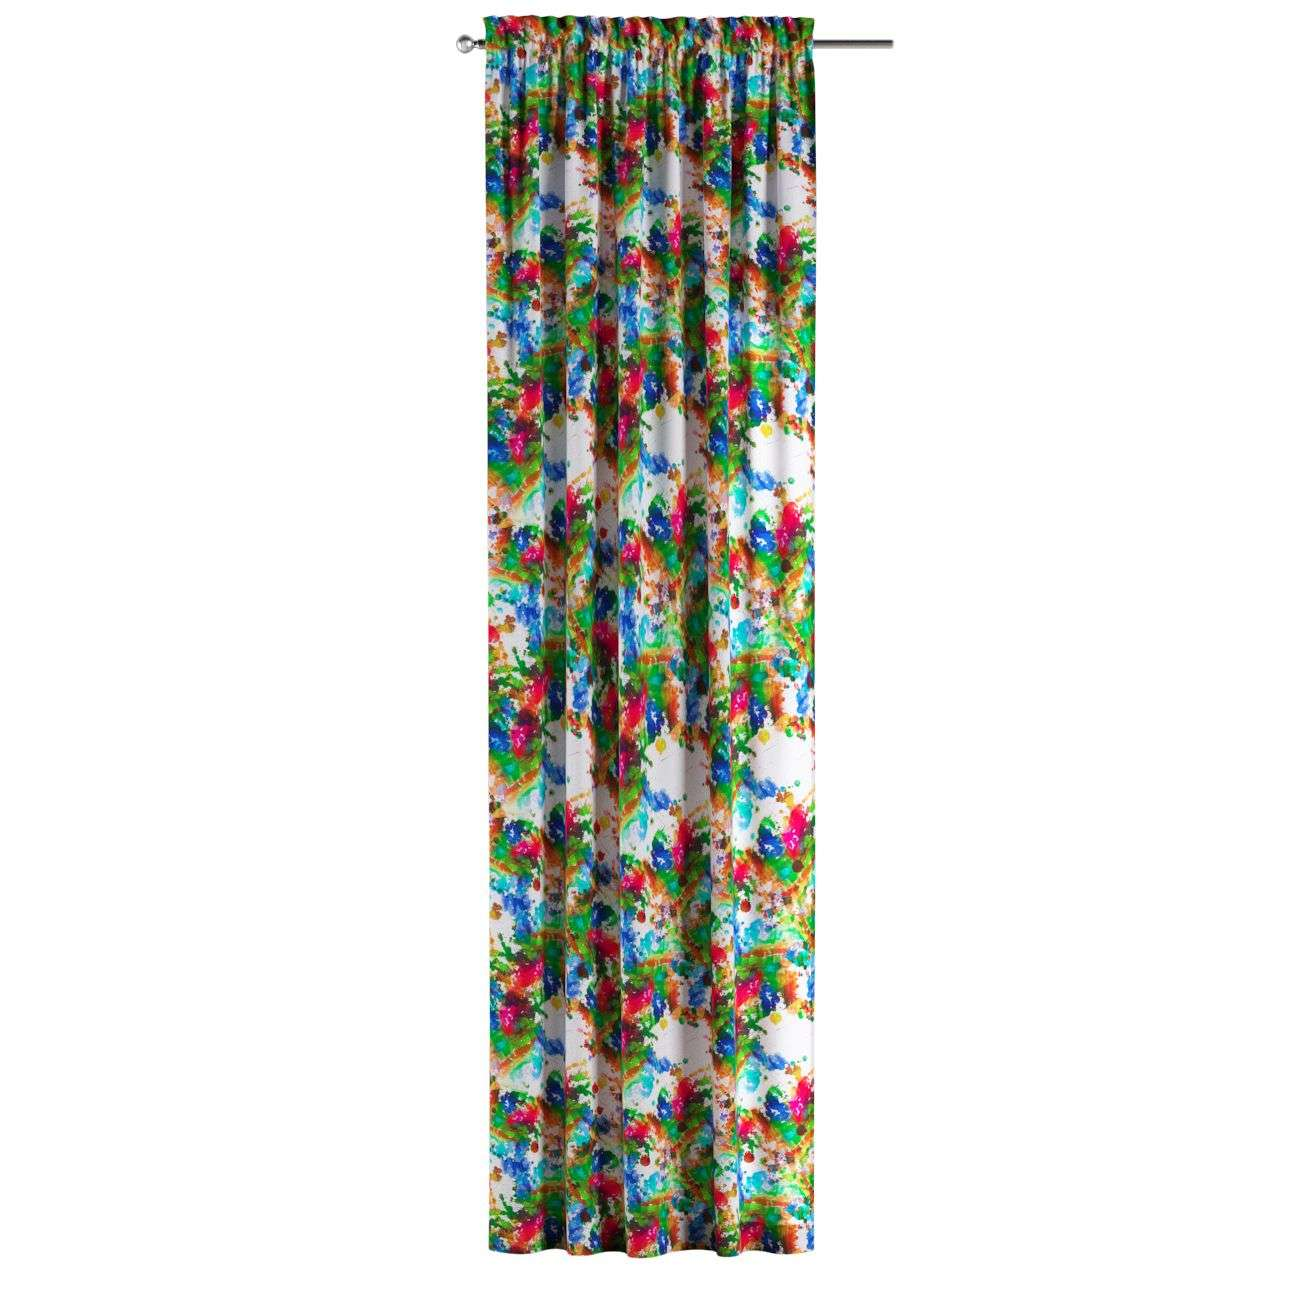 Slot and frill curtains in collection New Art, fabric: 140-23